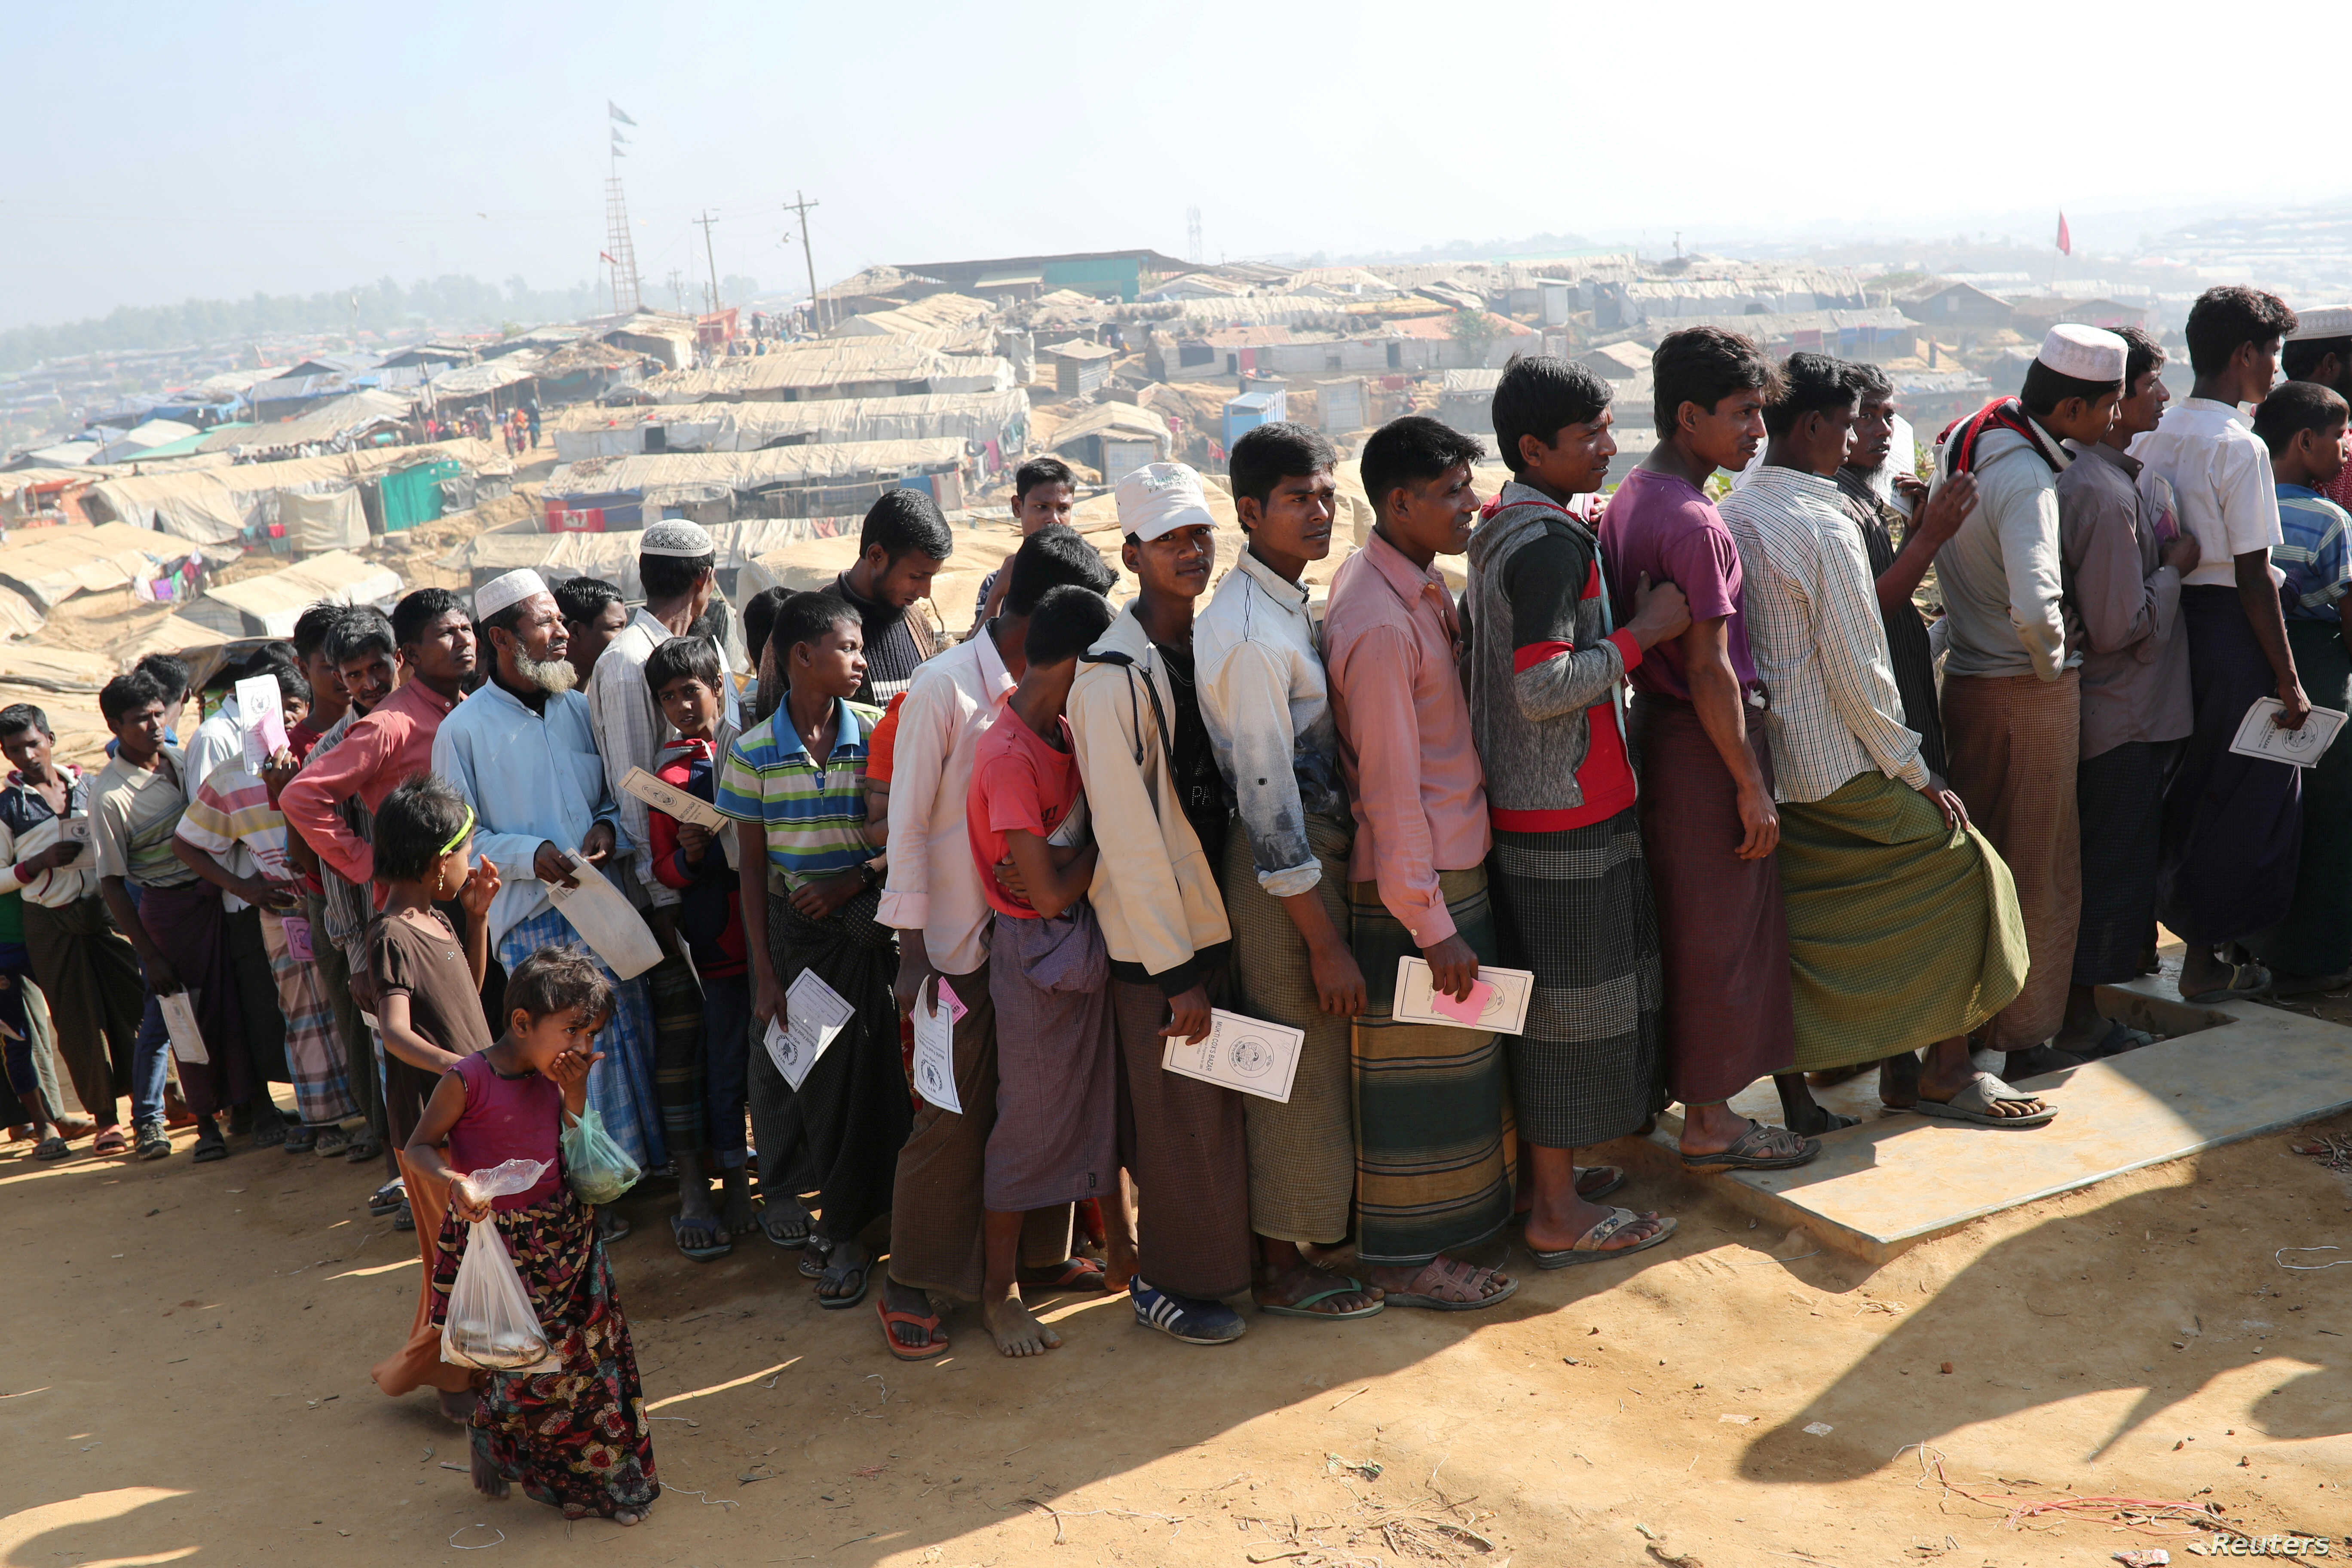 Rohingya refugees stand in a queue to collect aid supplies in Kutupalong refugee camp in Cox's Bazar, Bangladesh, Jan. 21, 2018.